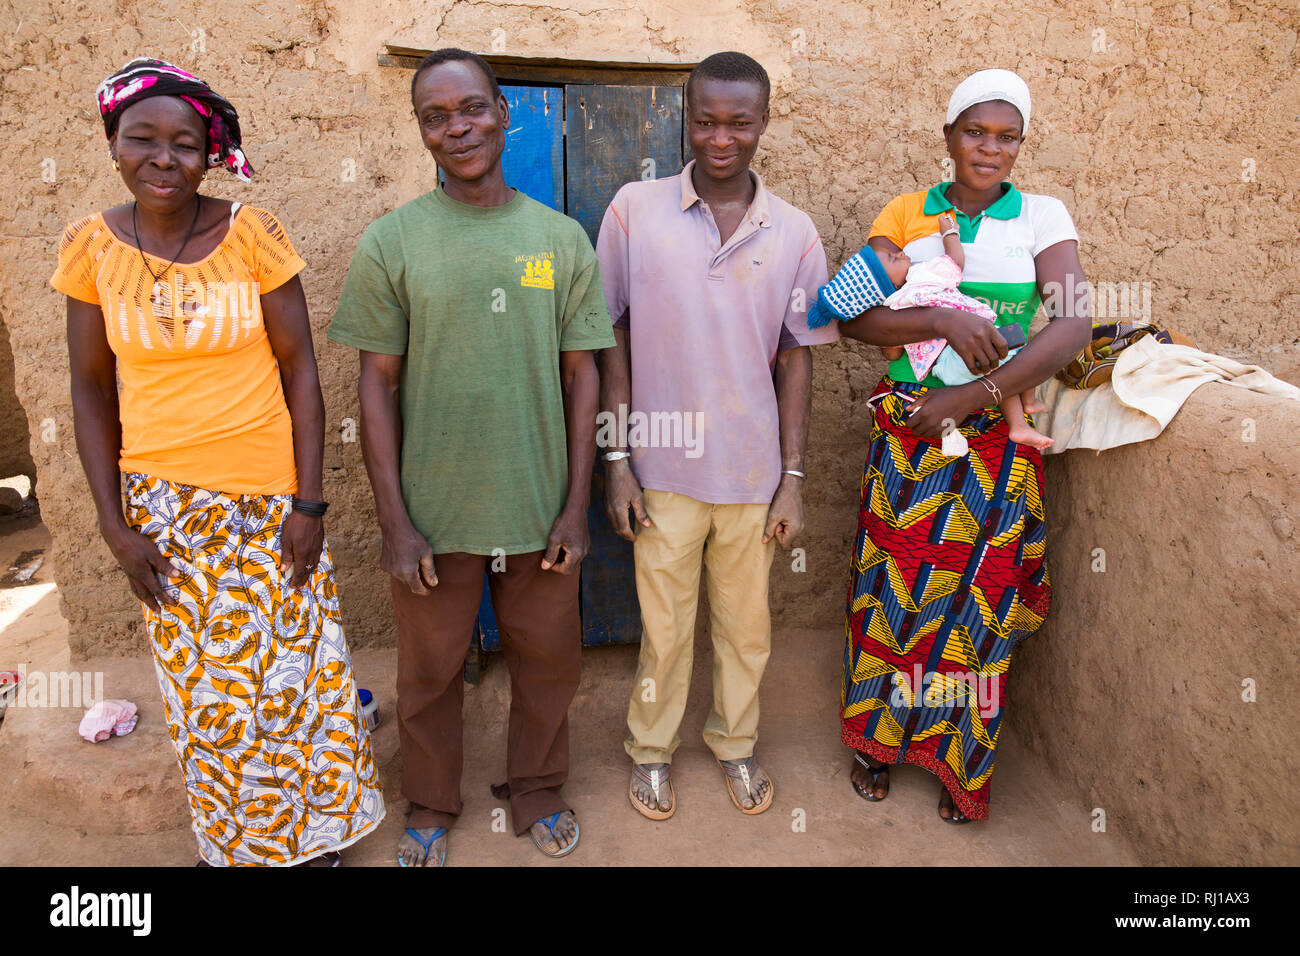 Kourono village, Yako province, Burkina Faso; Moussa Mande, 54,    with his wife Elizabeth Toro, 36, their son, daught-in-law and grand-daughter. Stock Photo